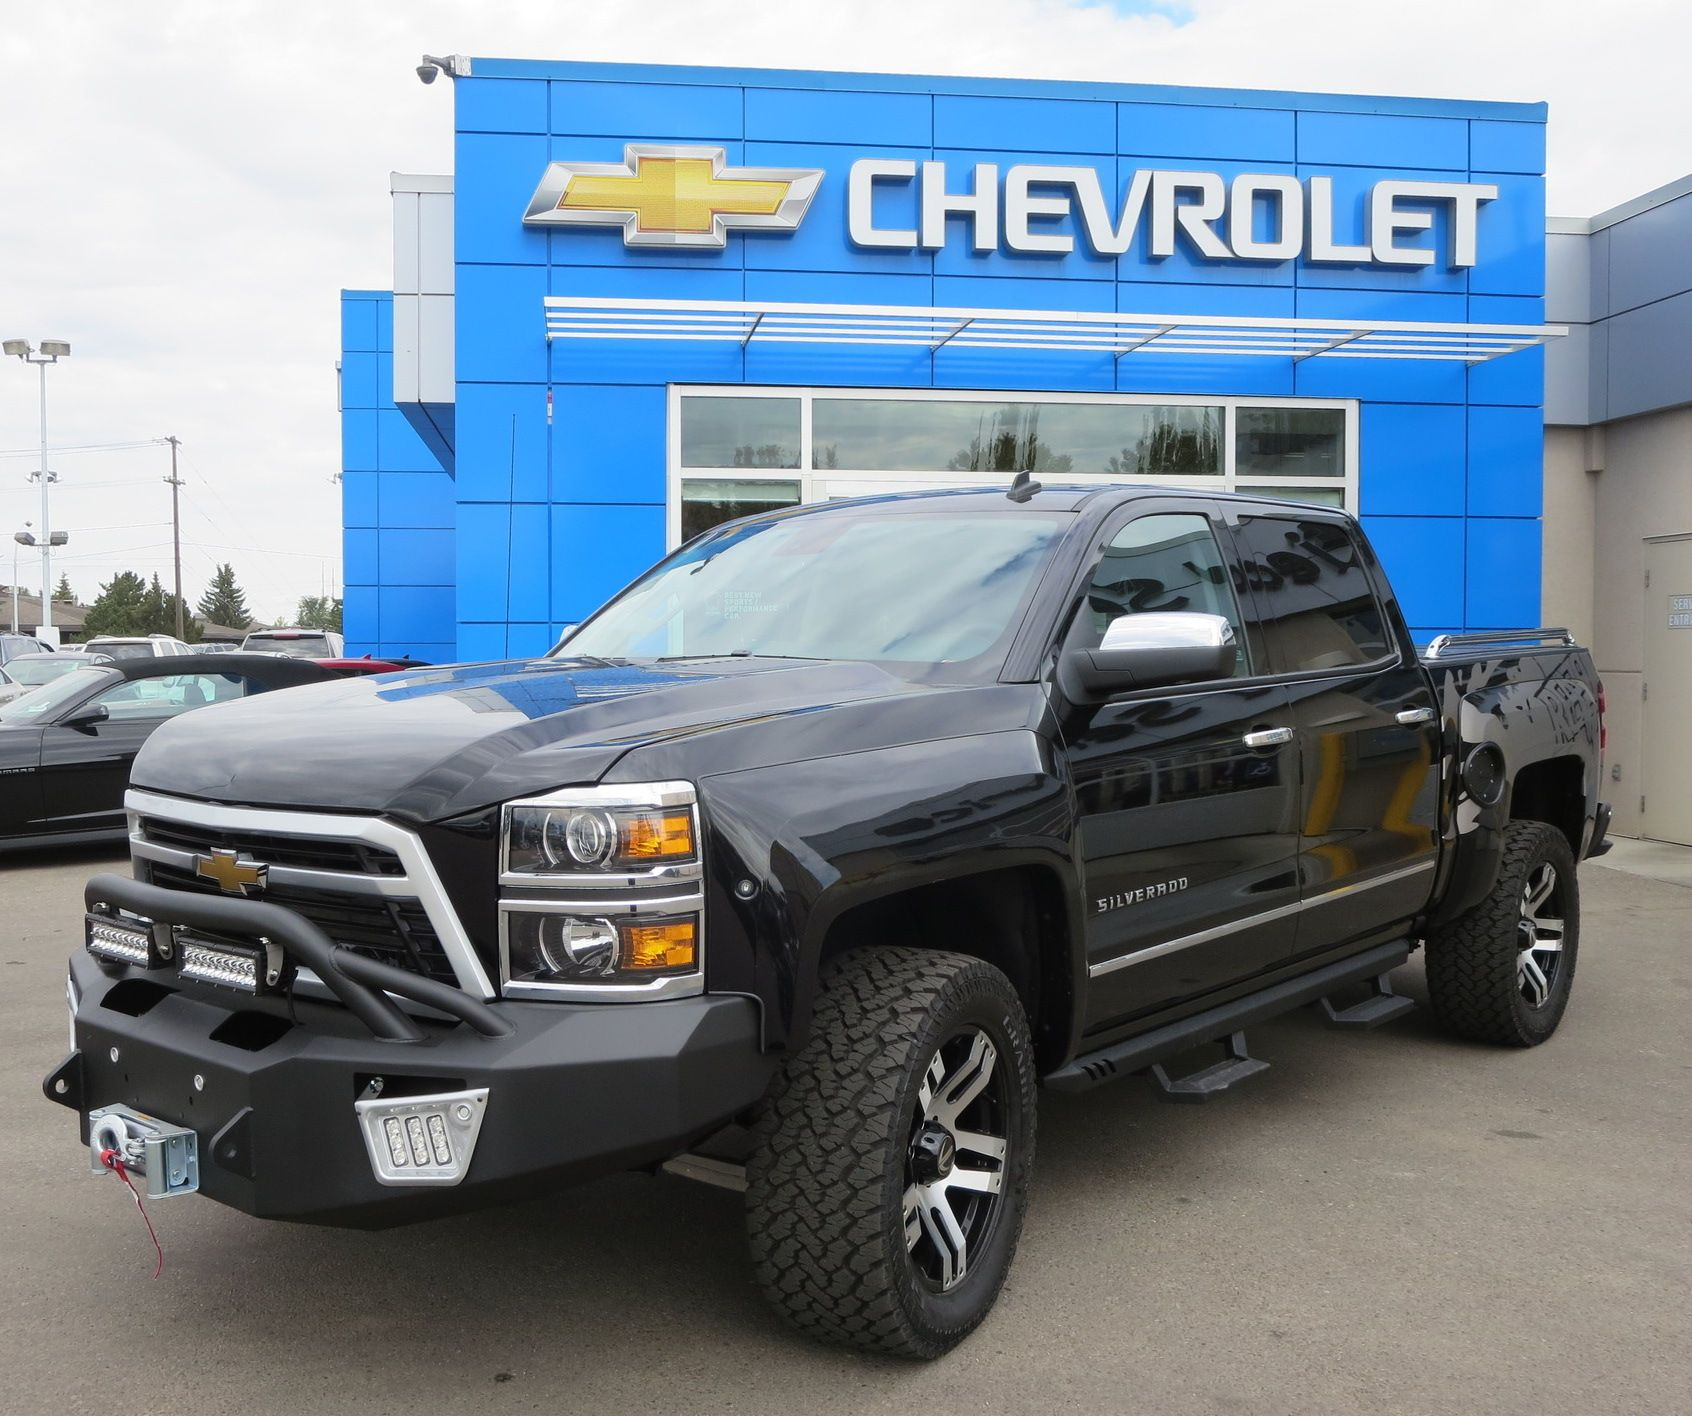 Chevy Reaper For Sale >> Badass Chevy Reaper Black At Westgate Chevrolet Trucks